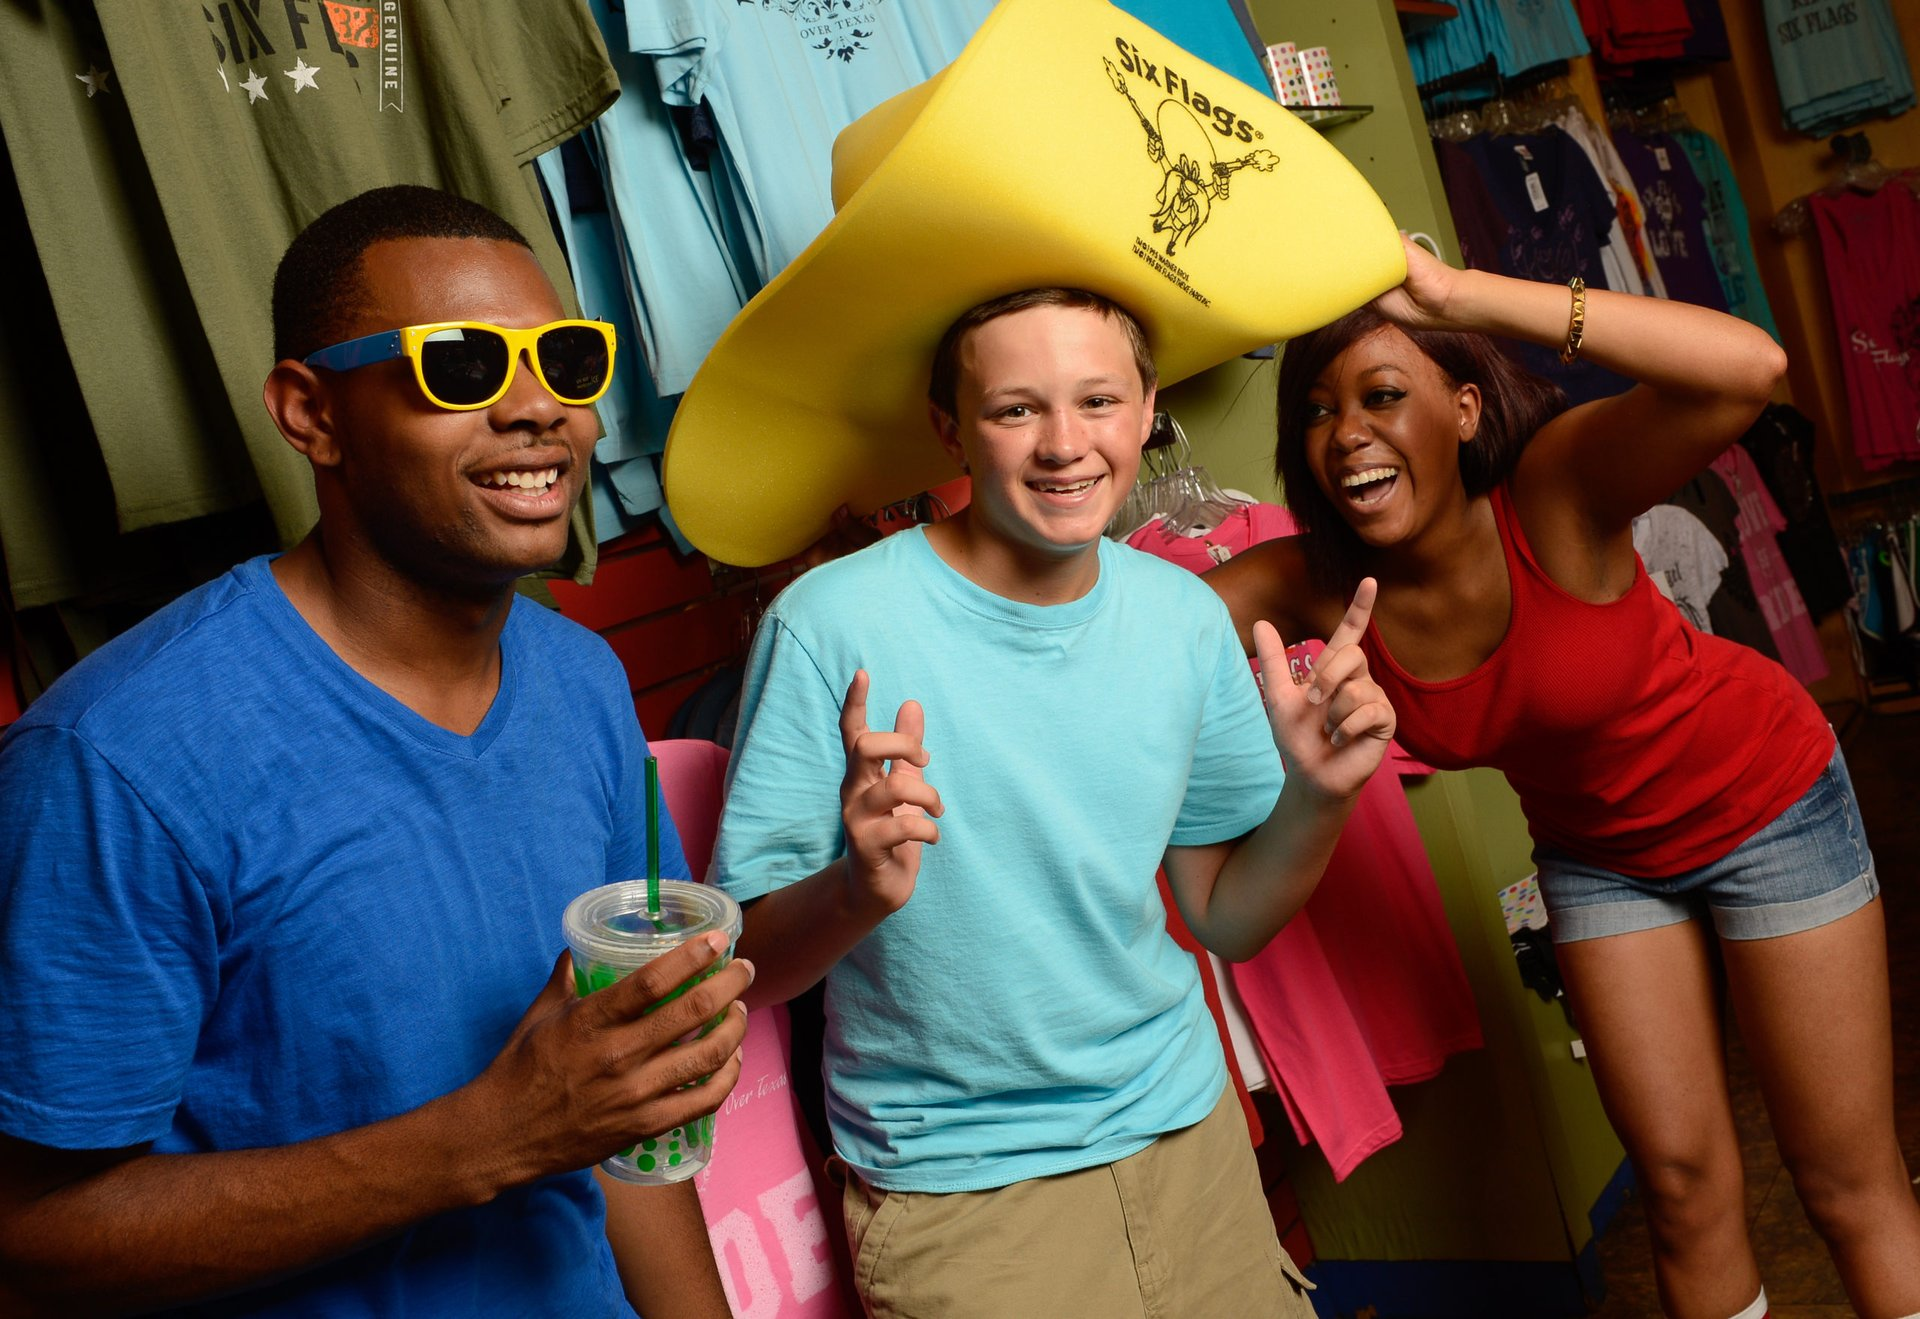 Three people smiling at the camera while shopping at a Six Flags theme park